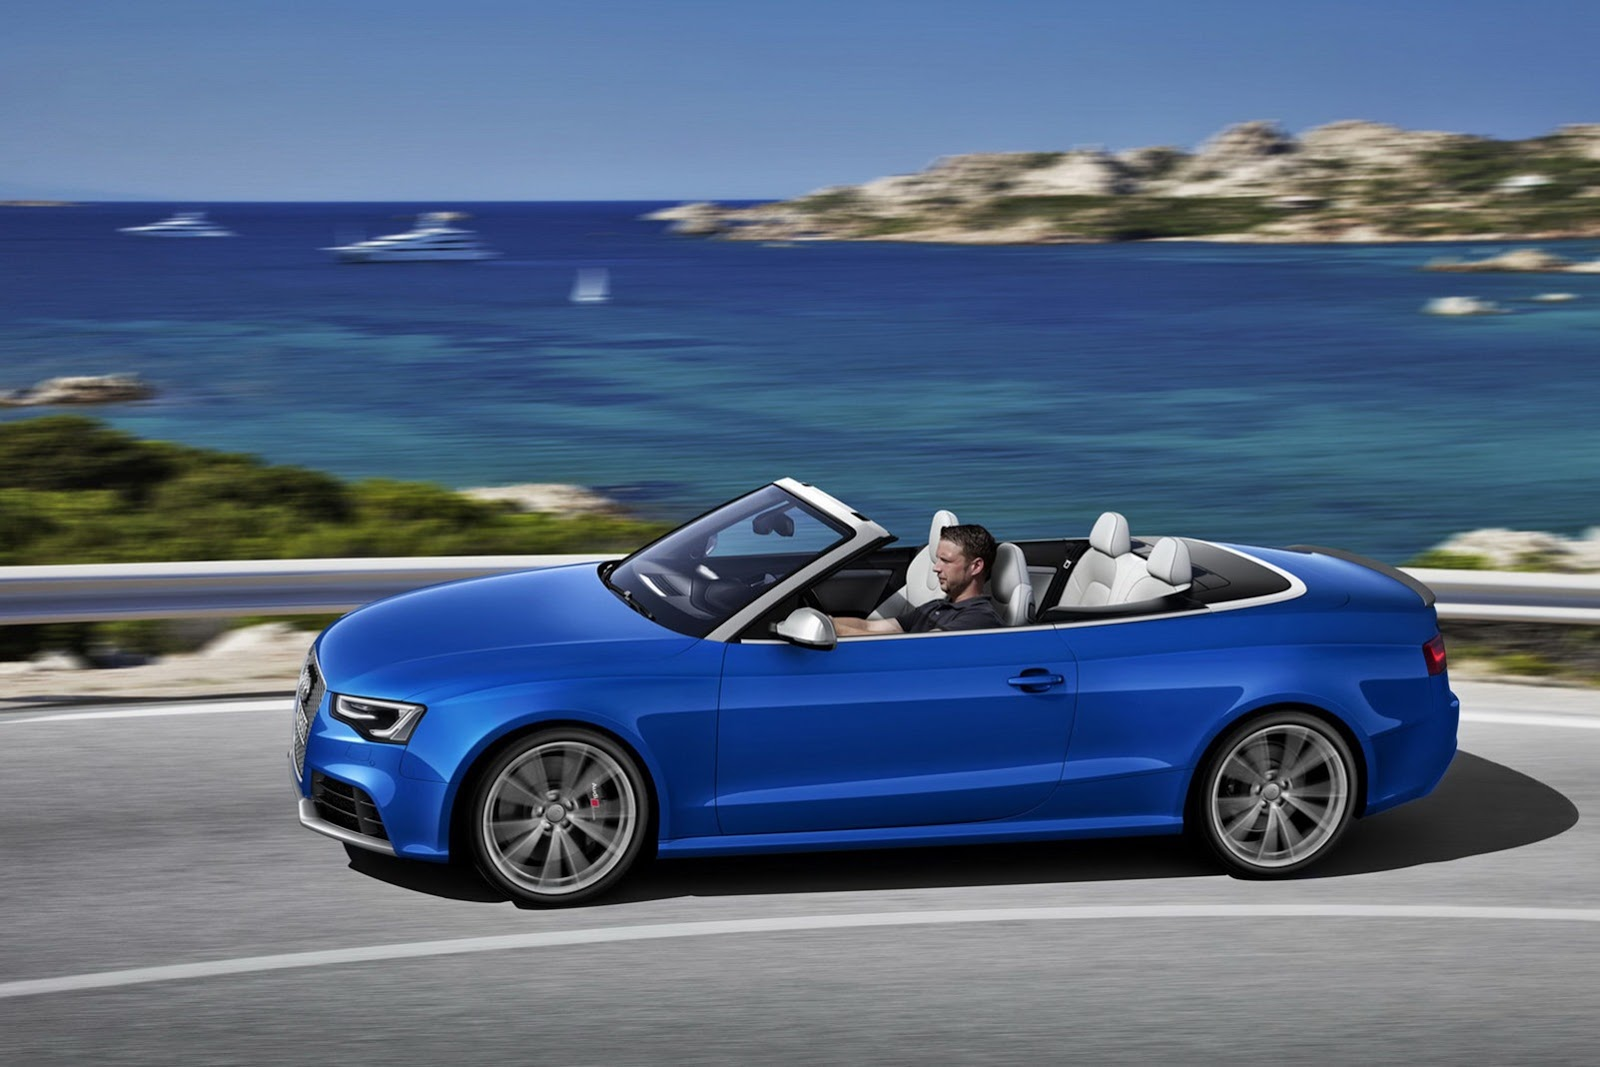 audi rs5 cabrio photos 13 on better parts ltd. Black Bedroom Furniture Sets. Home Design Ideas